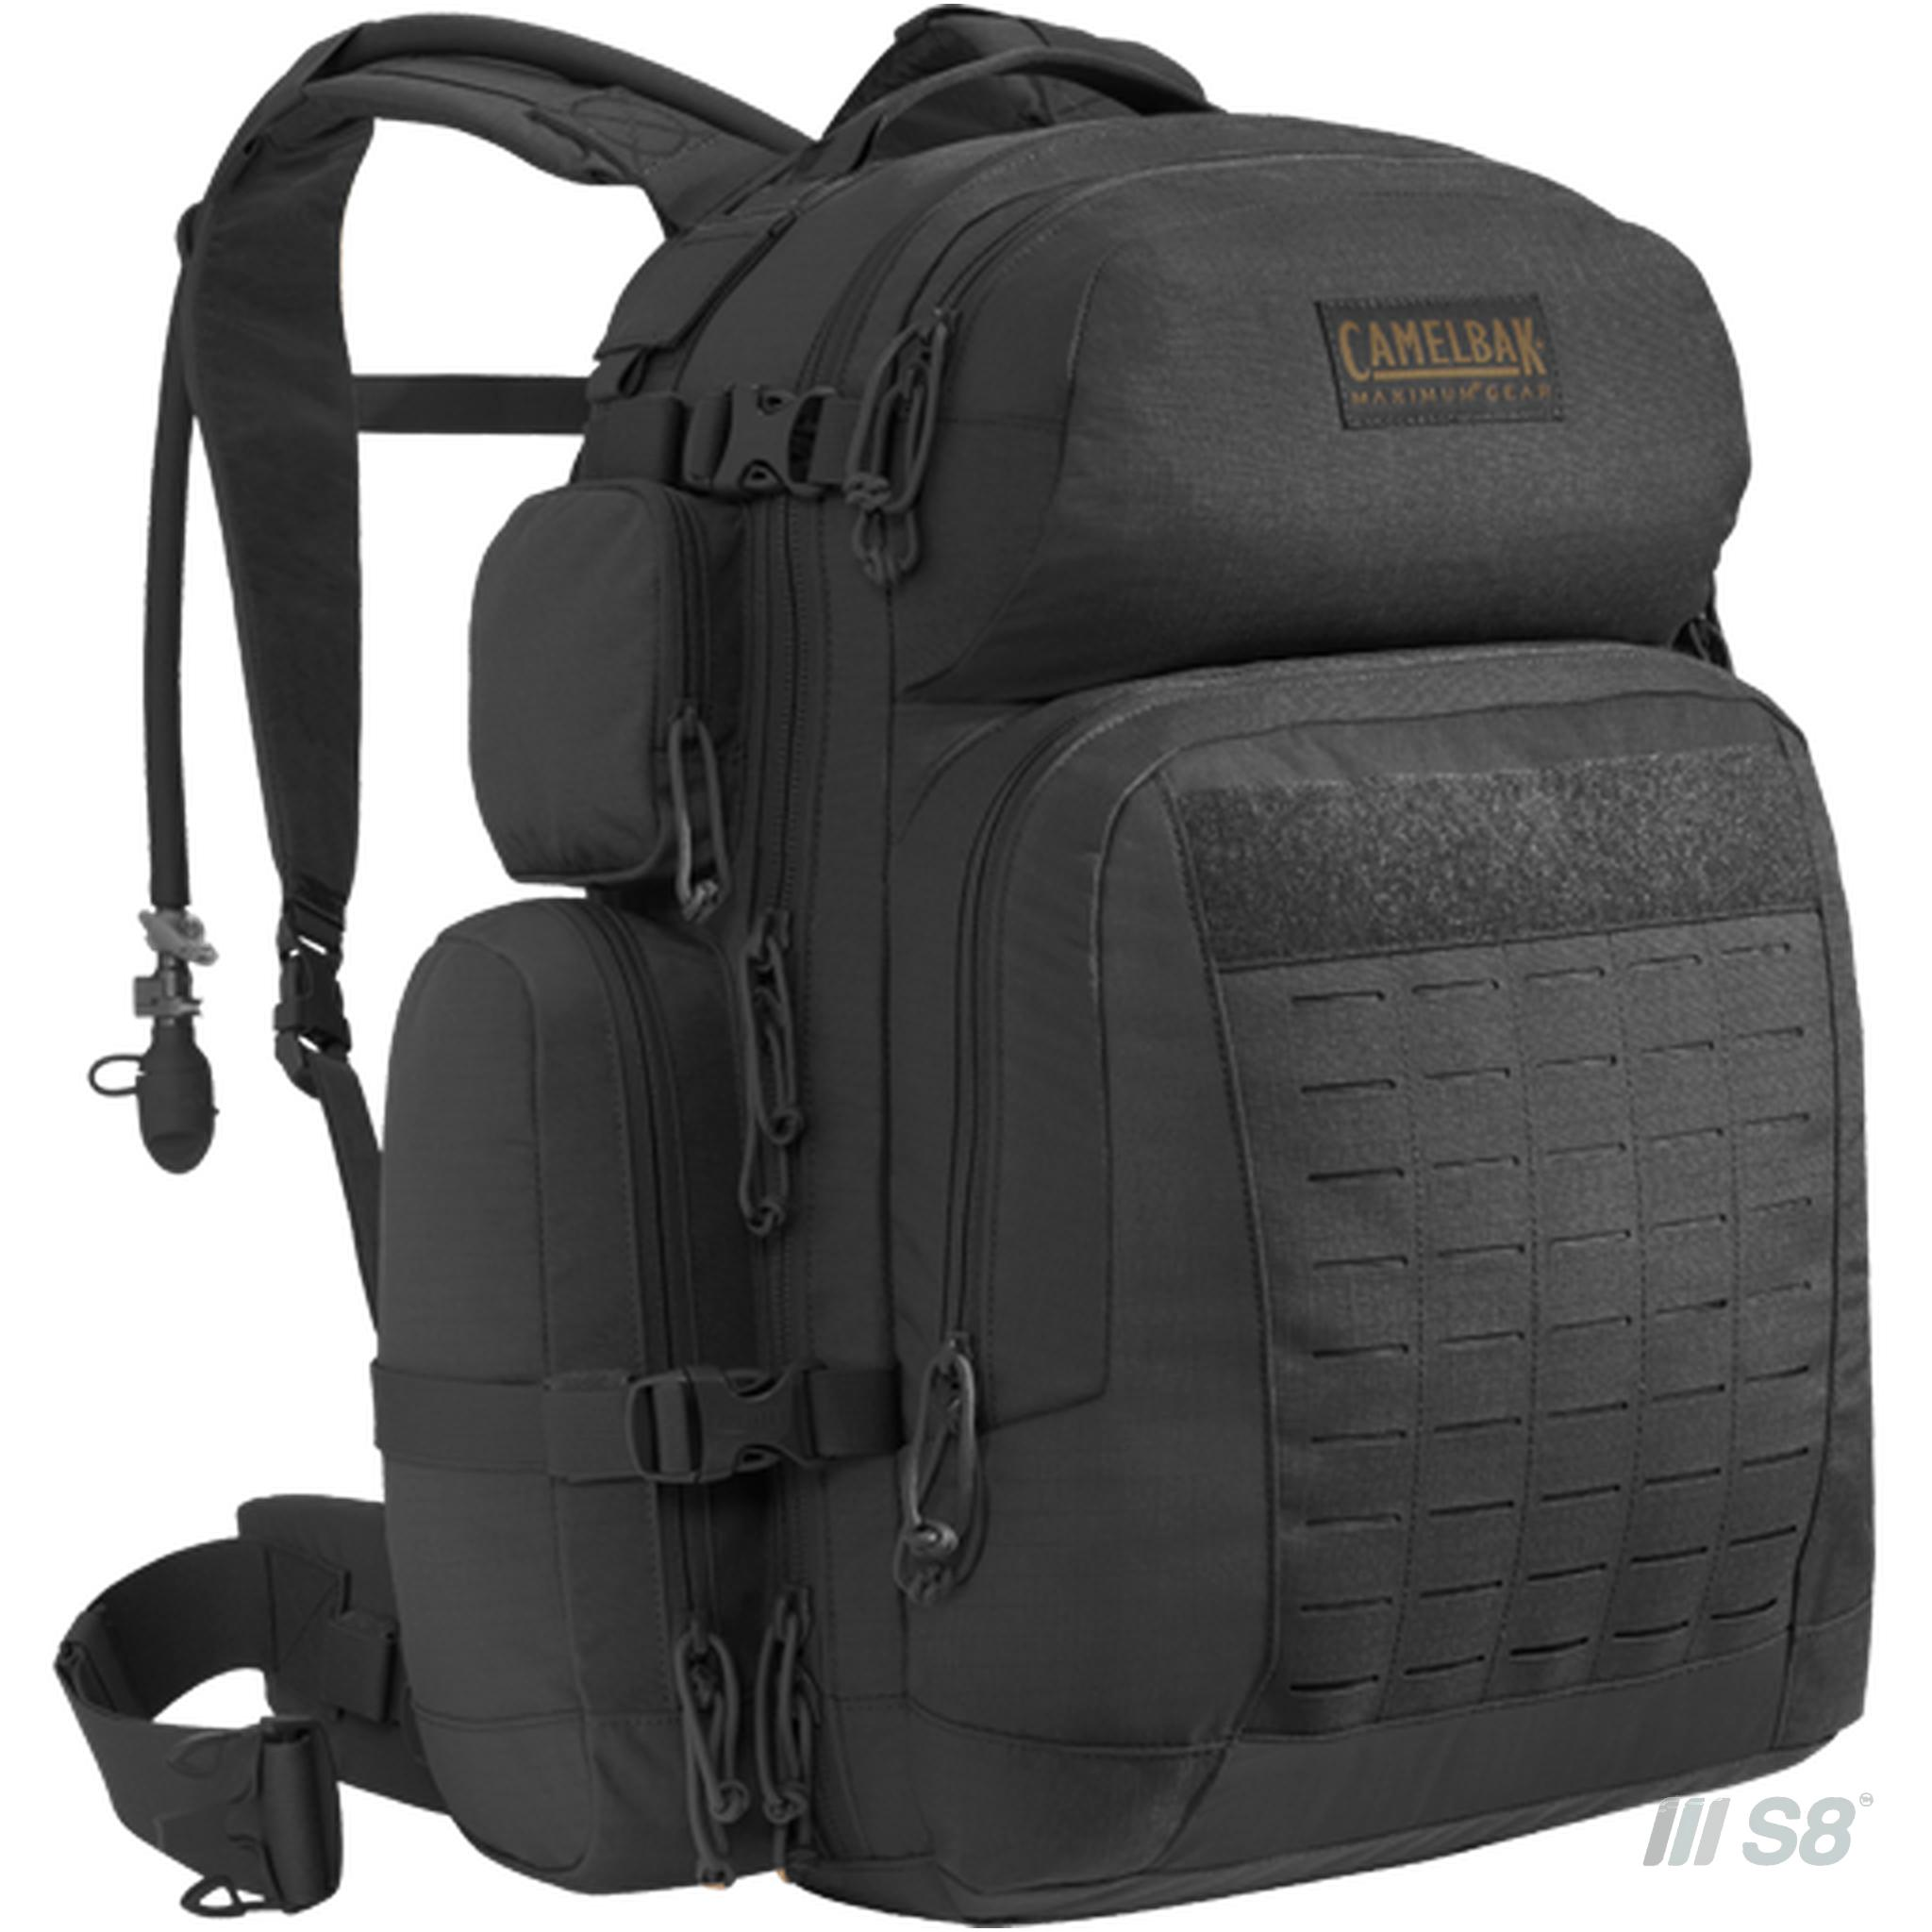 BFM-Camelbak-S8 Products Group